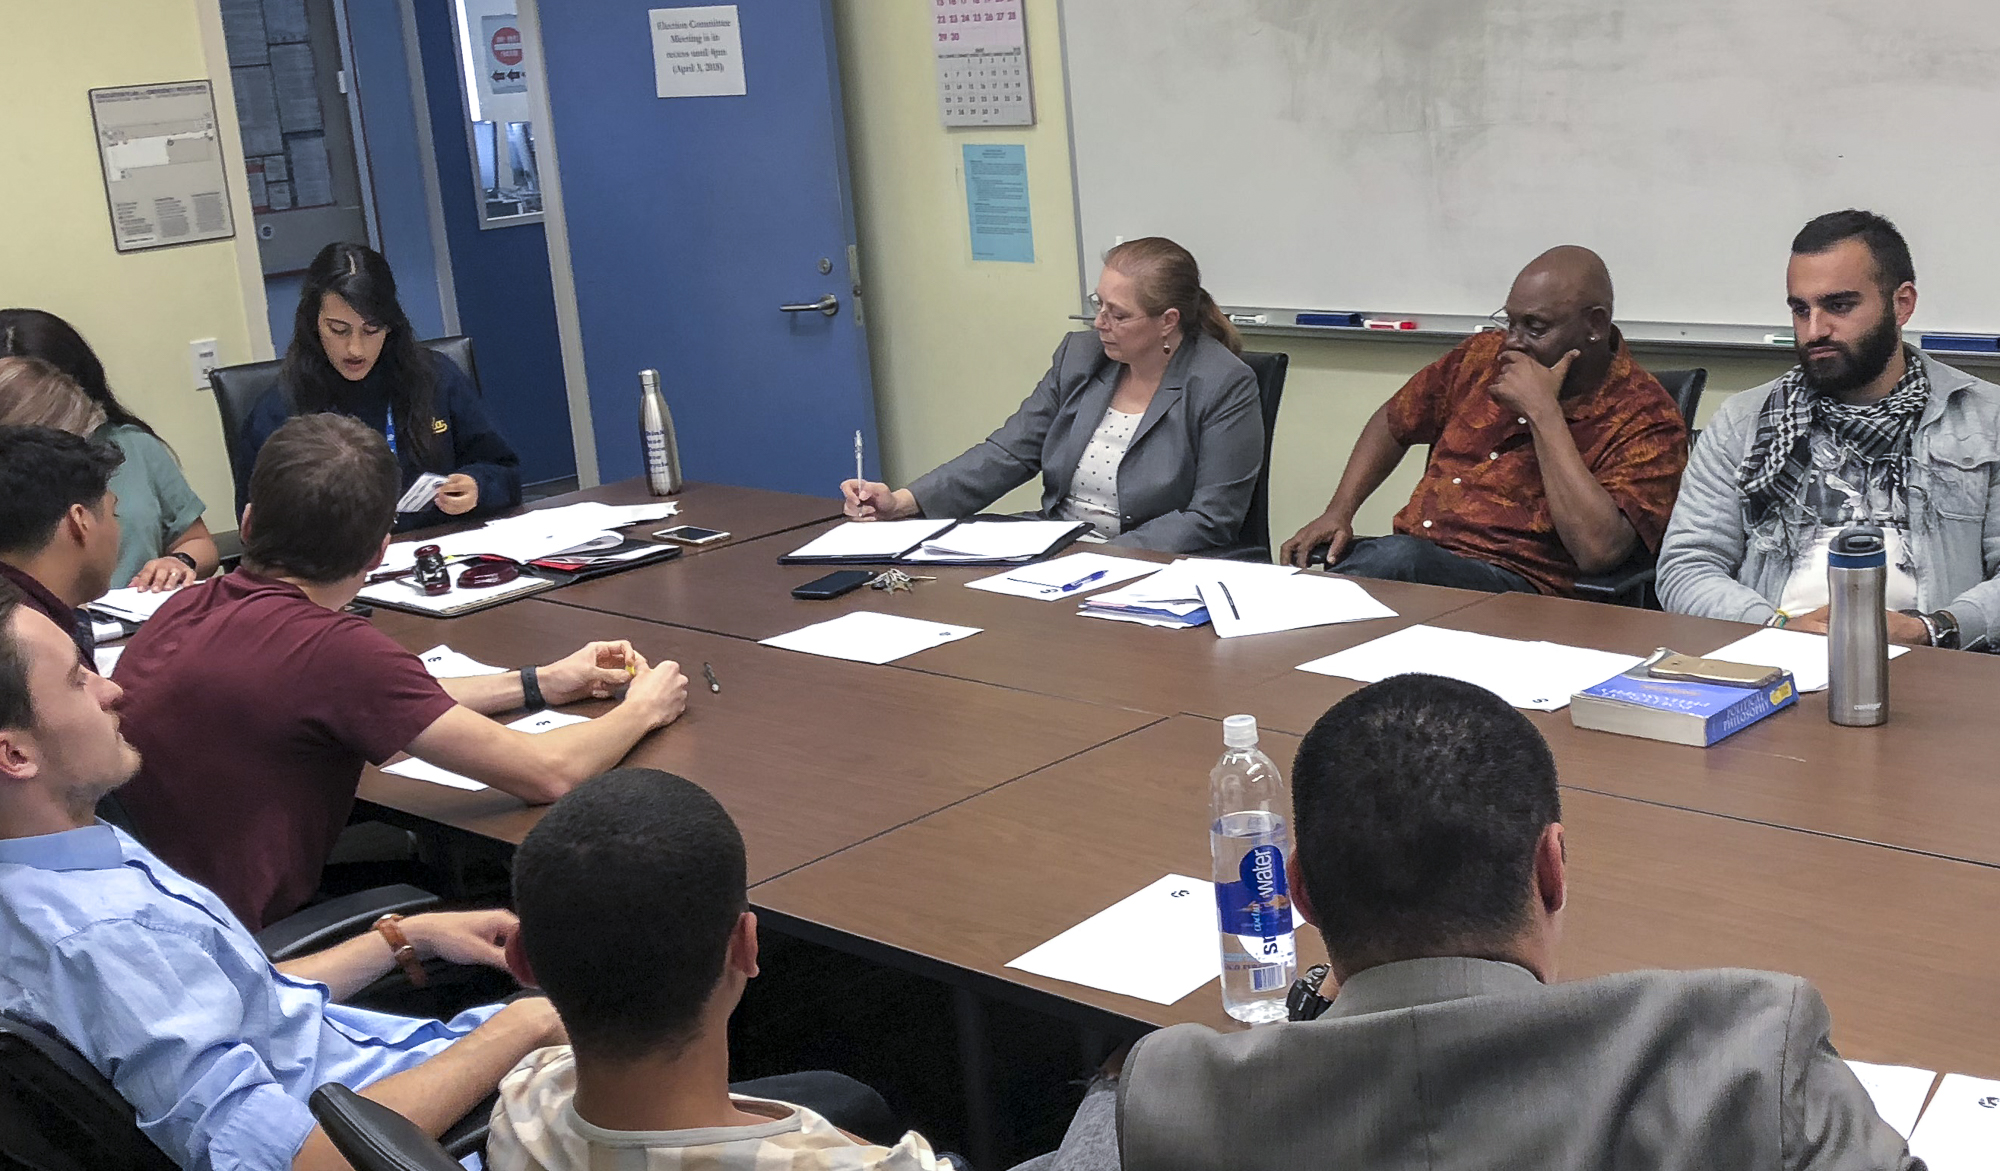 The Election Committee Members discuss a variety of filed violations amongst committee members and Associated Student candidates at the election committee meeting held in the conference room in the Cayton Center on Santa Monica College's main campus in Santa Monica, Calif.ornia on Tuesday, April 3, 2018. (Ryanne Mena/Corsair Photo)